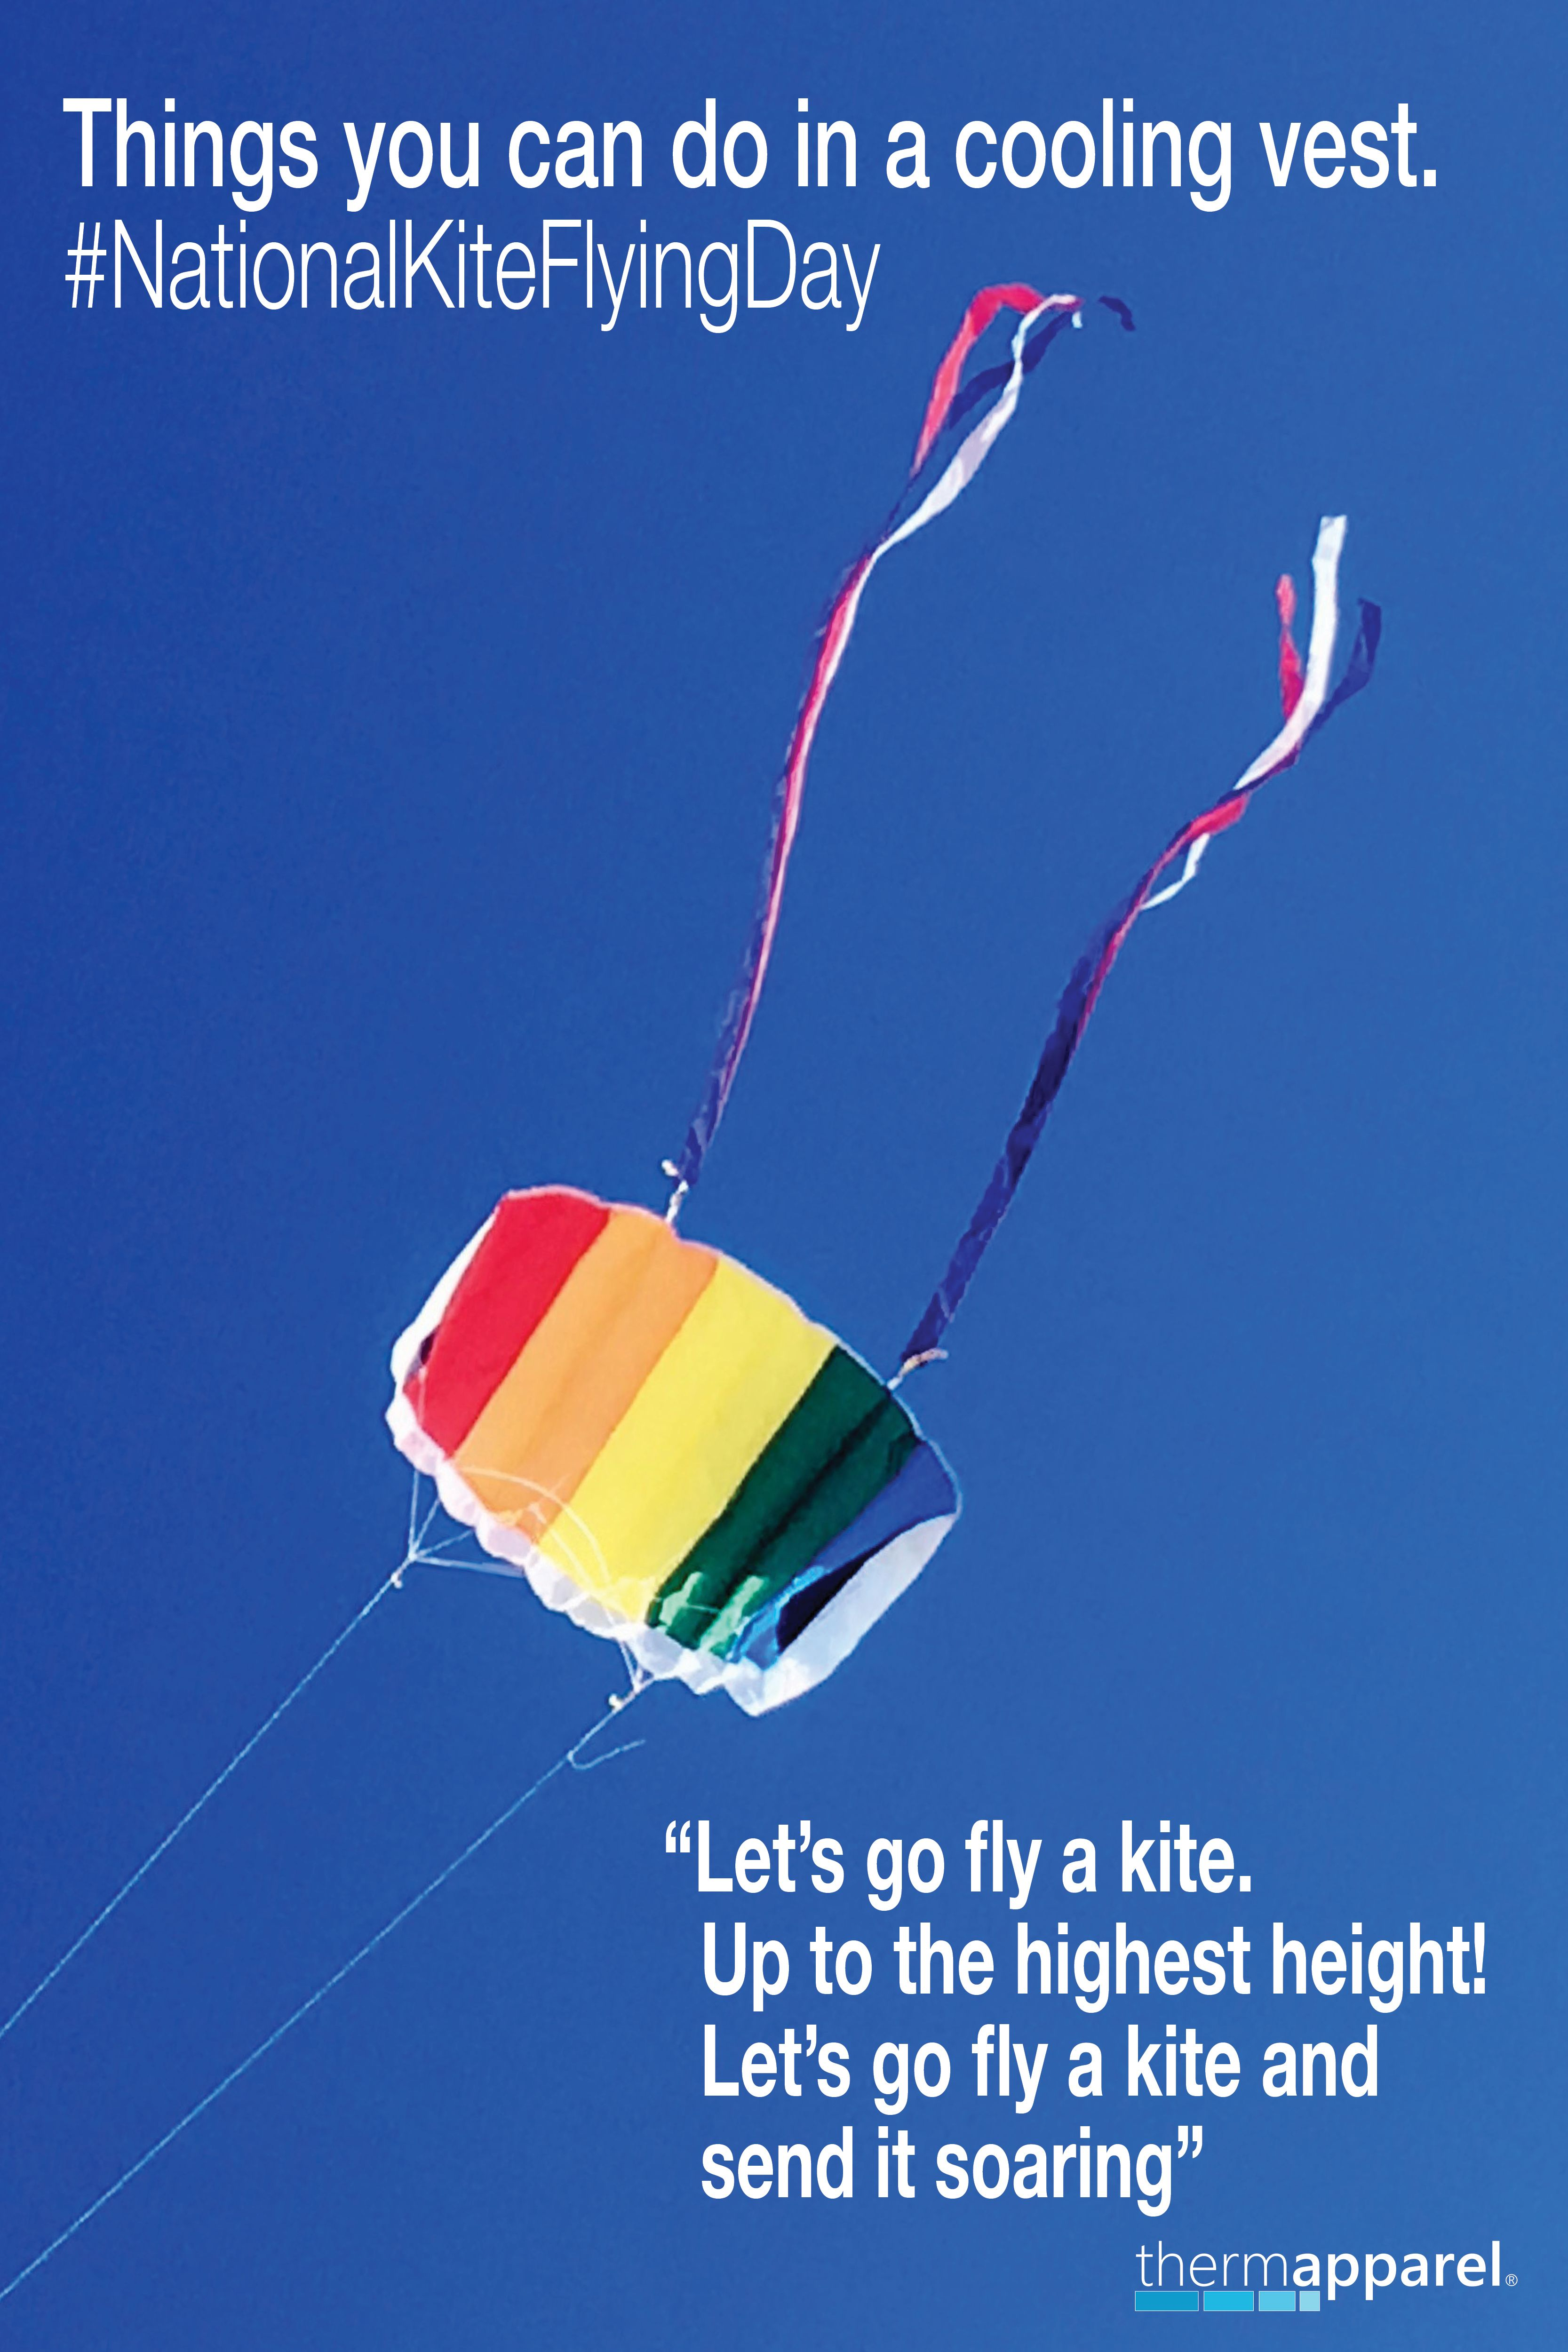 Things I can do in a cooling vest. NationalKiteFlyingDay